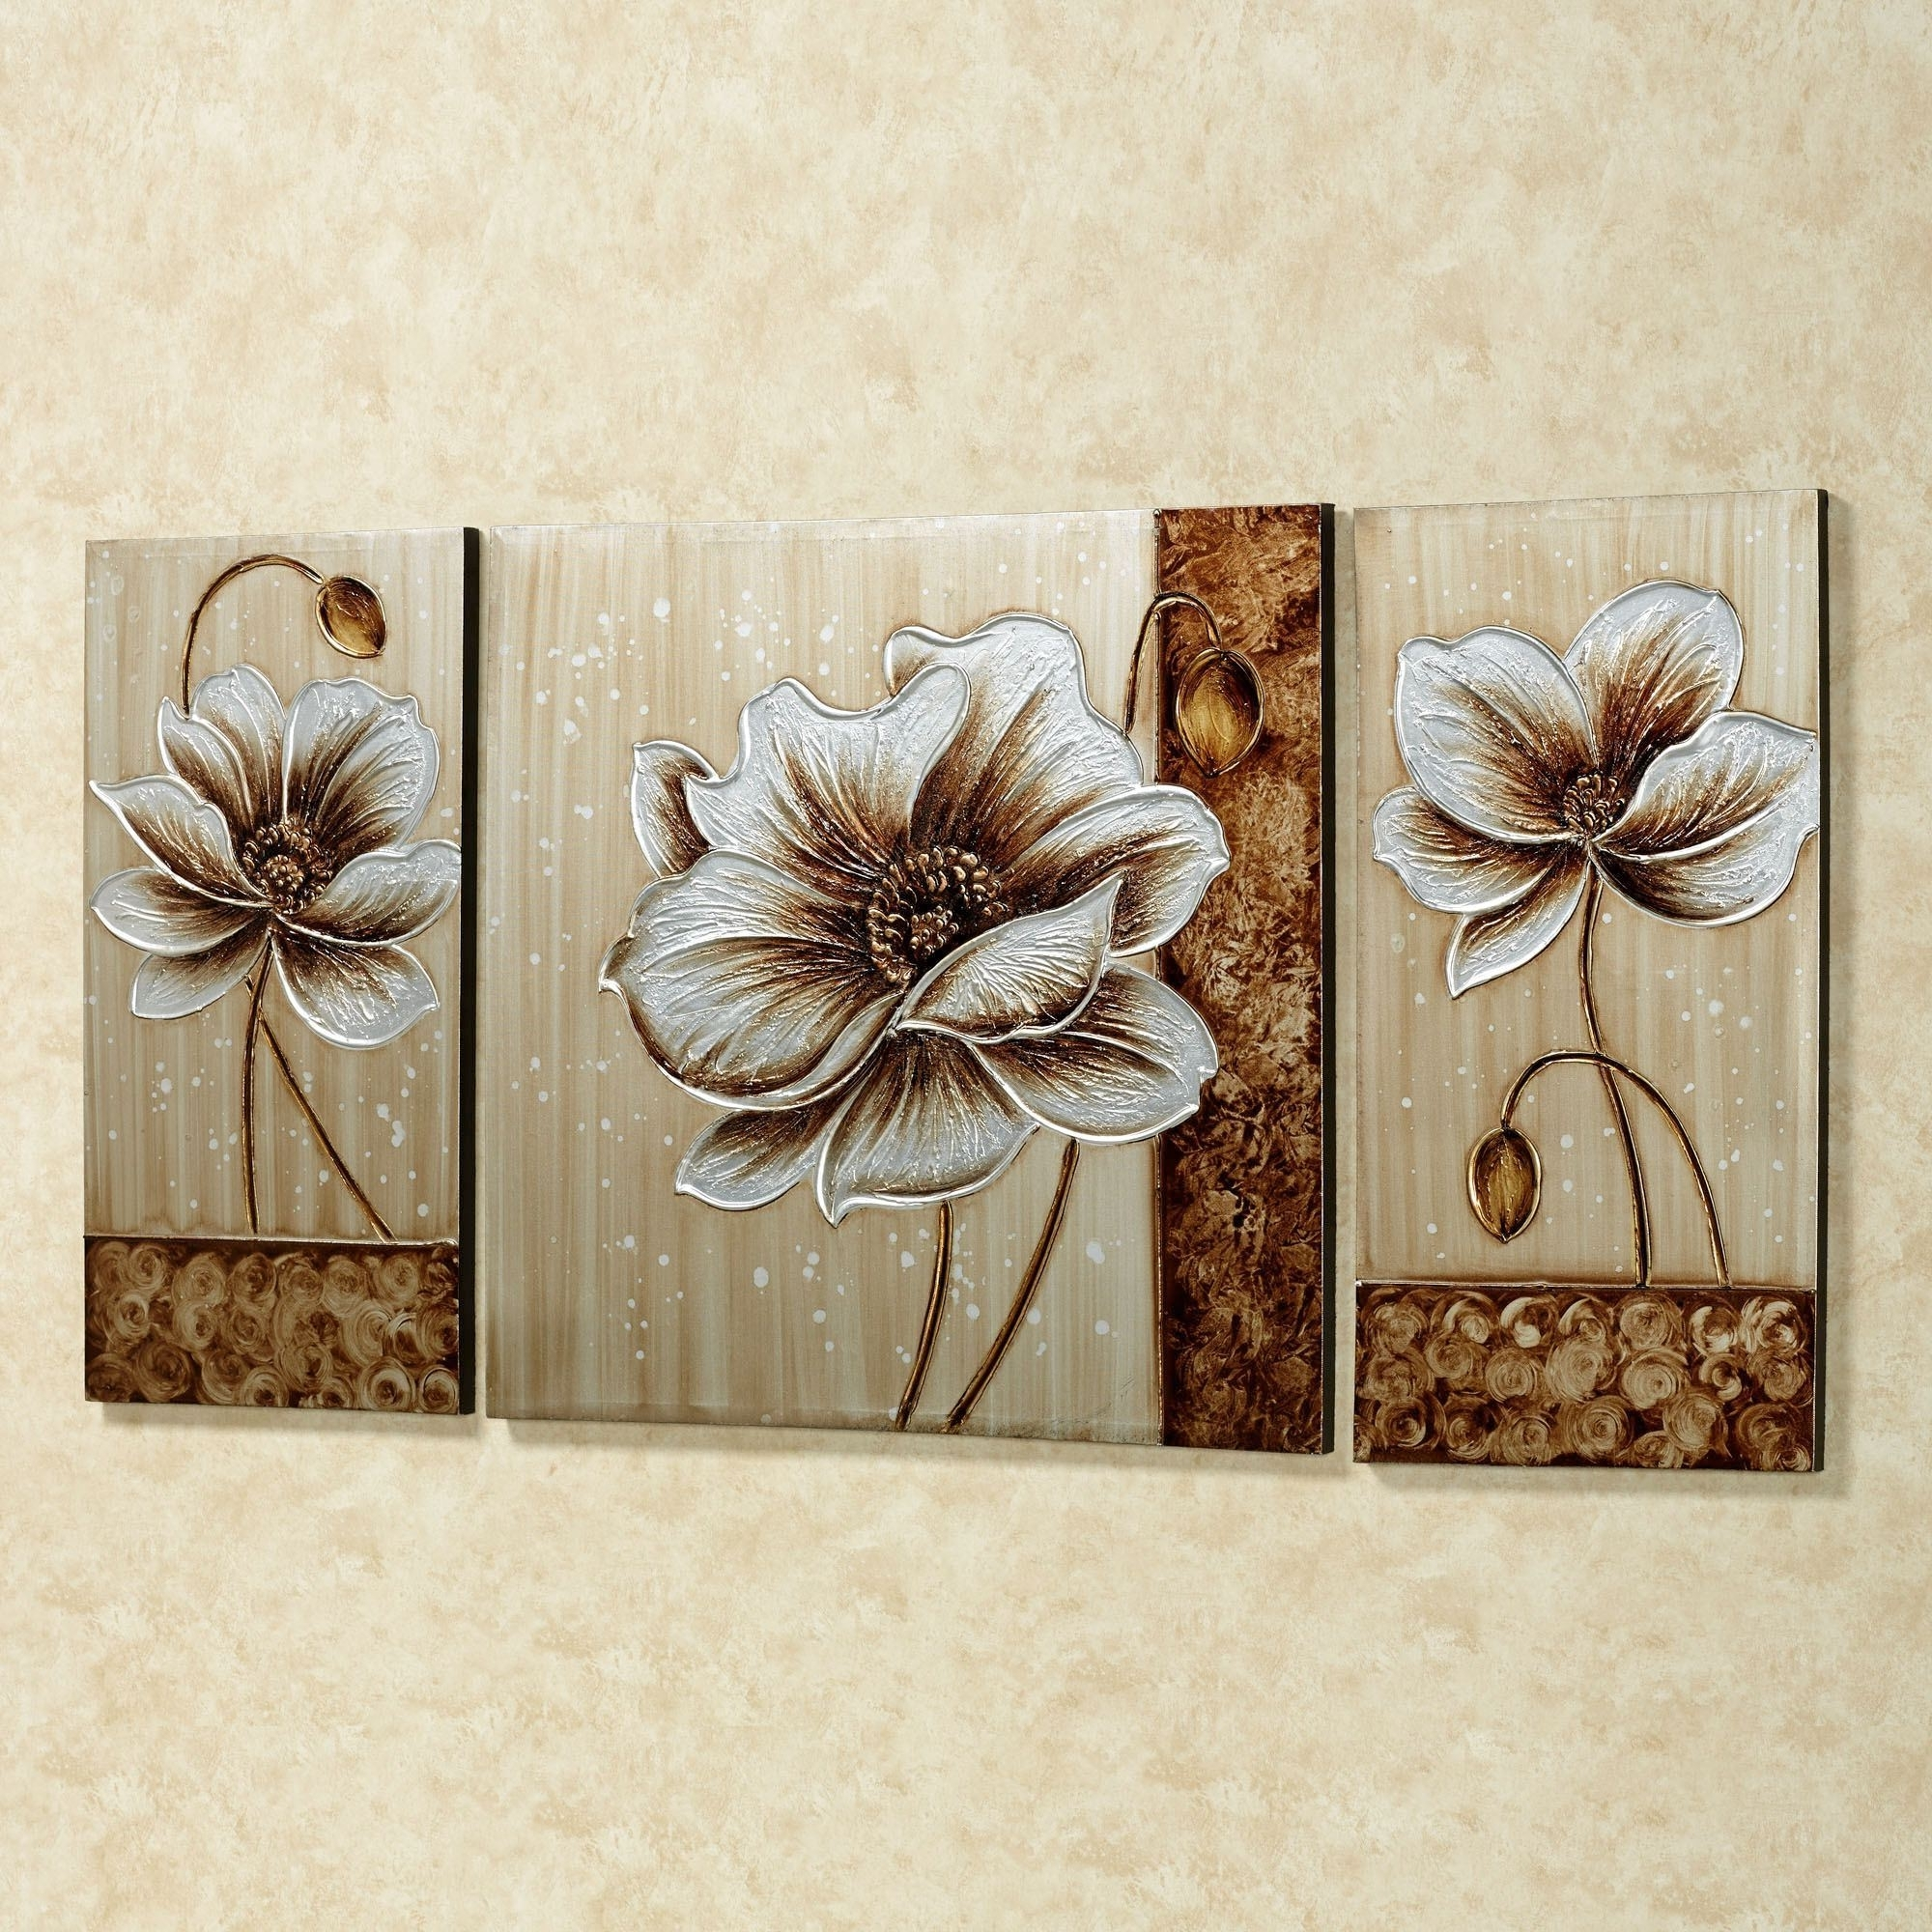 Most Popular Wall Art Canvas With Subtle Elegance Floral Canvas Wall Art Set (View 6 of 15)